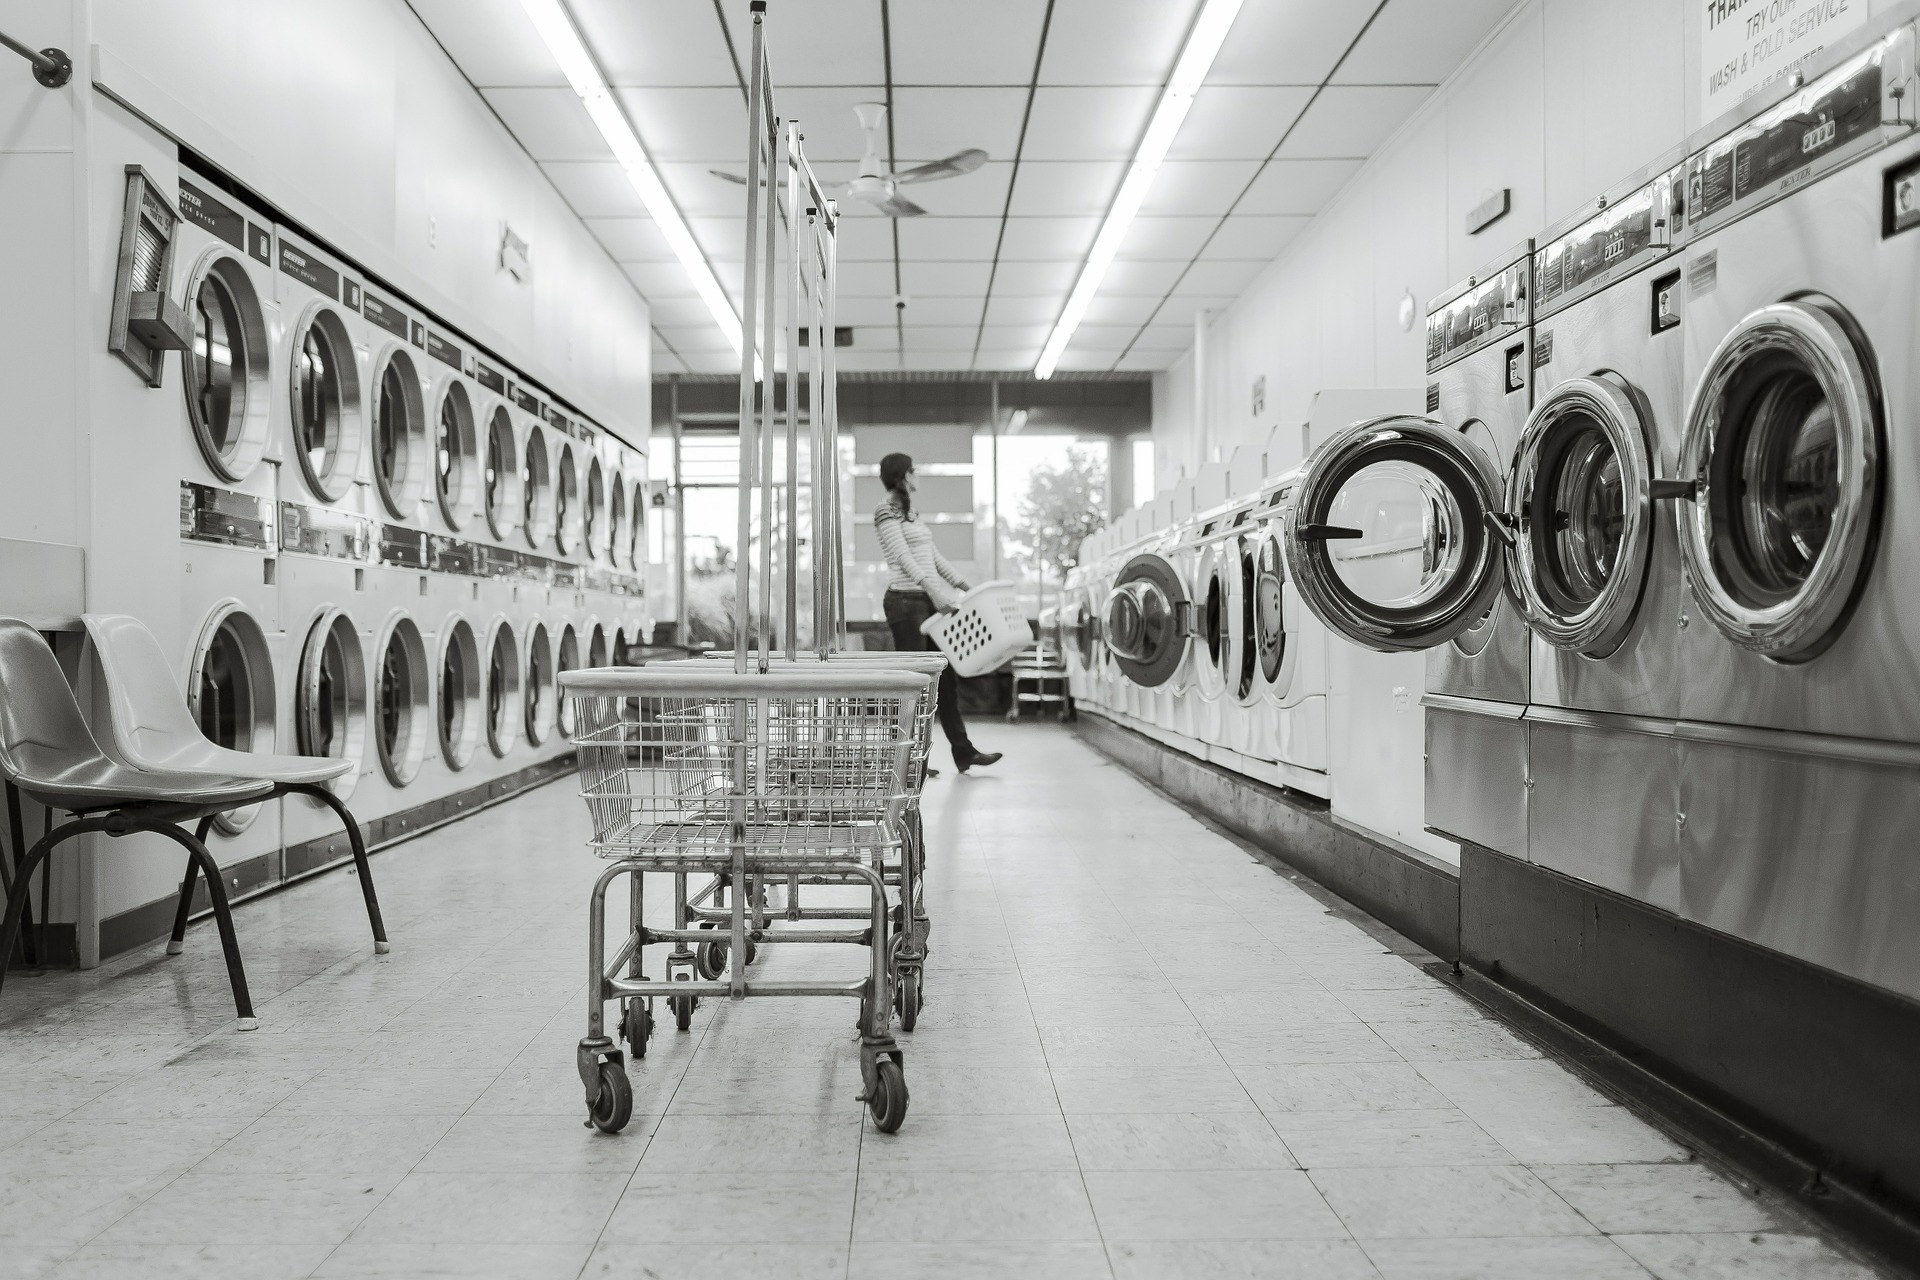 laundry-saloon-567951_1920.jpg